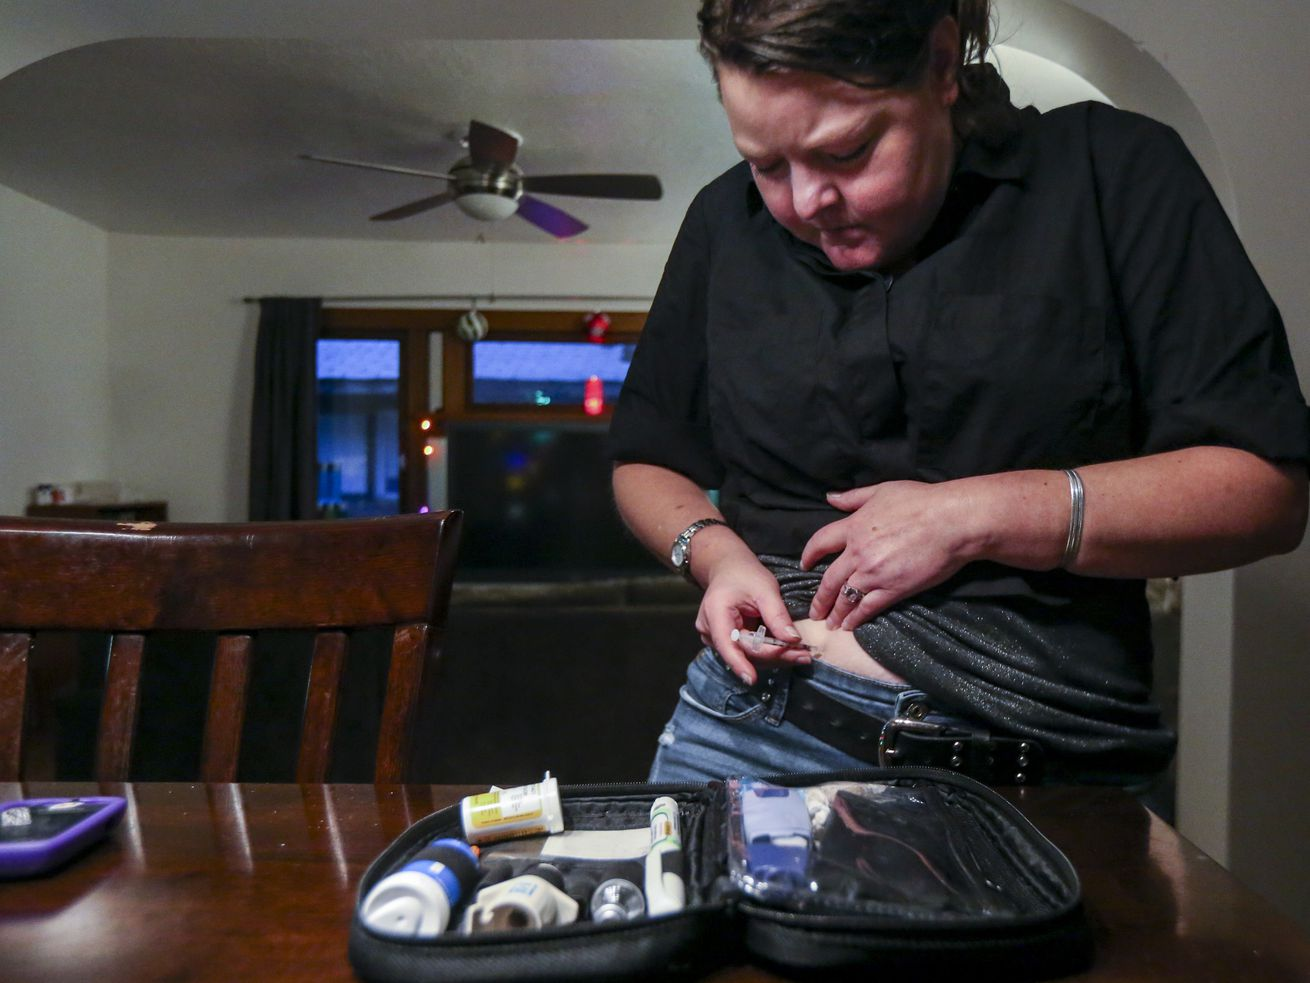 Insulin keeps diabetics alive. What happens when they can't afford it?